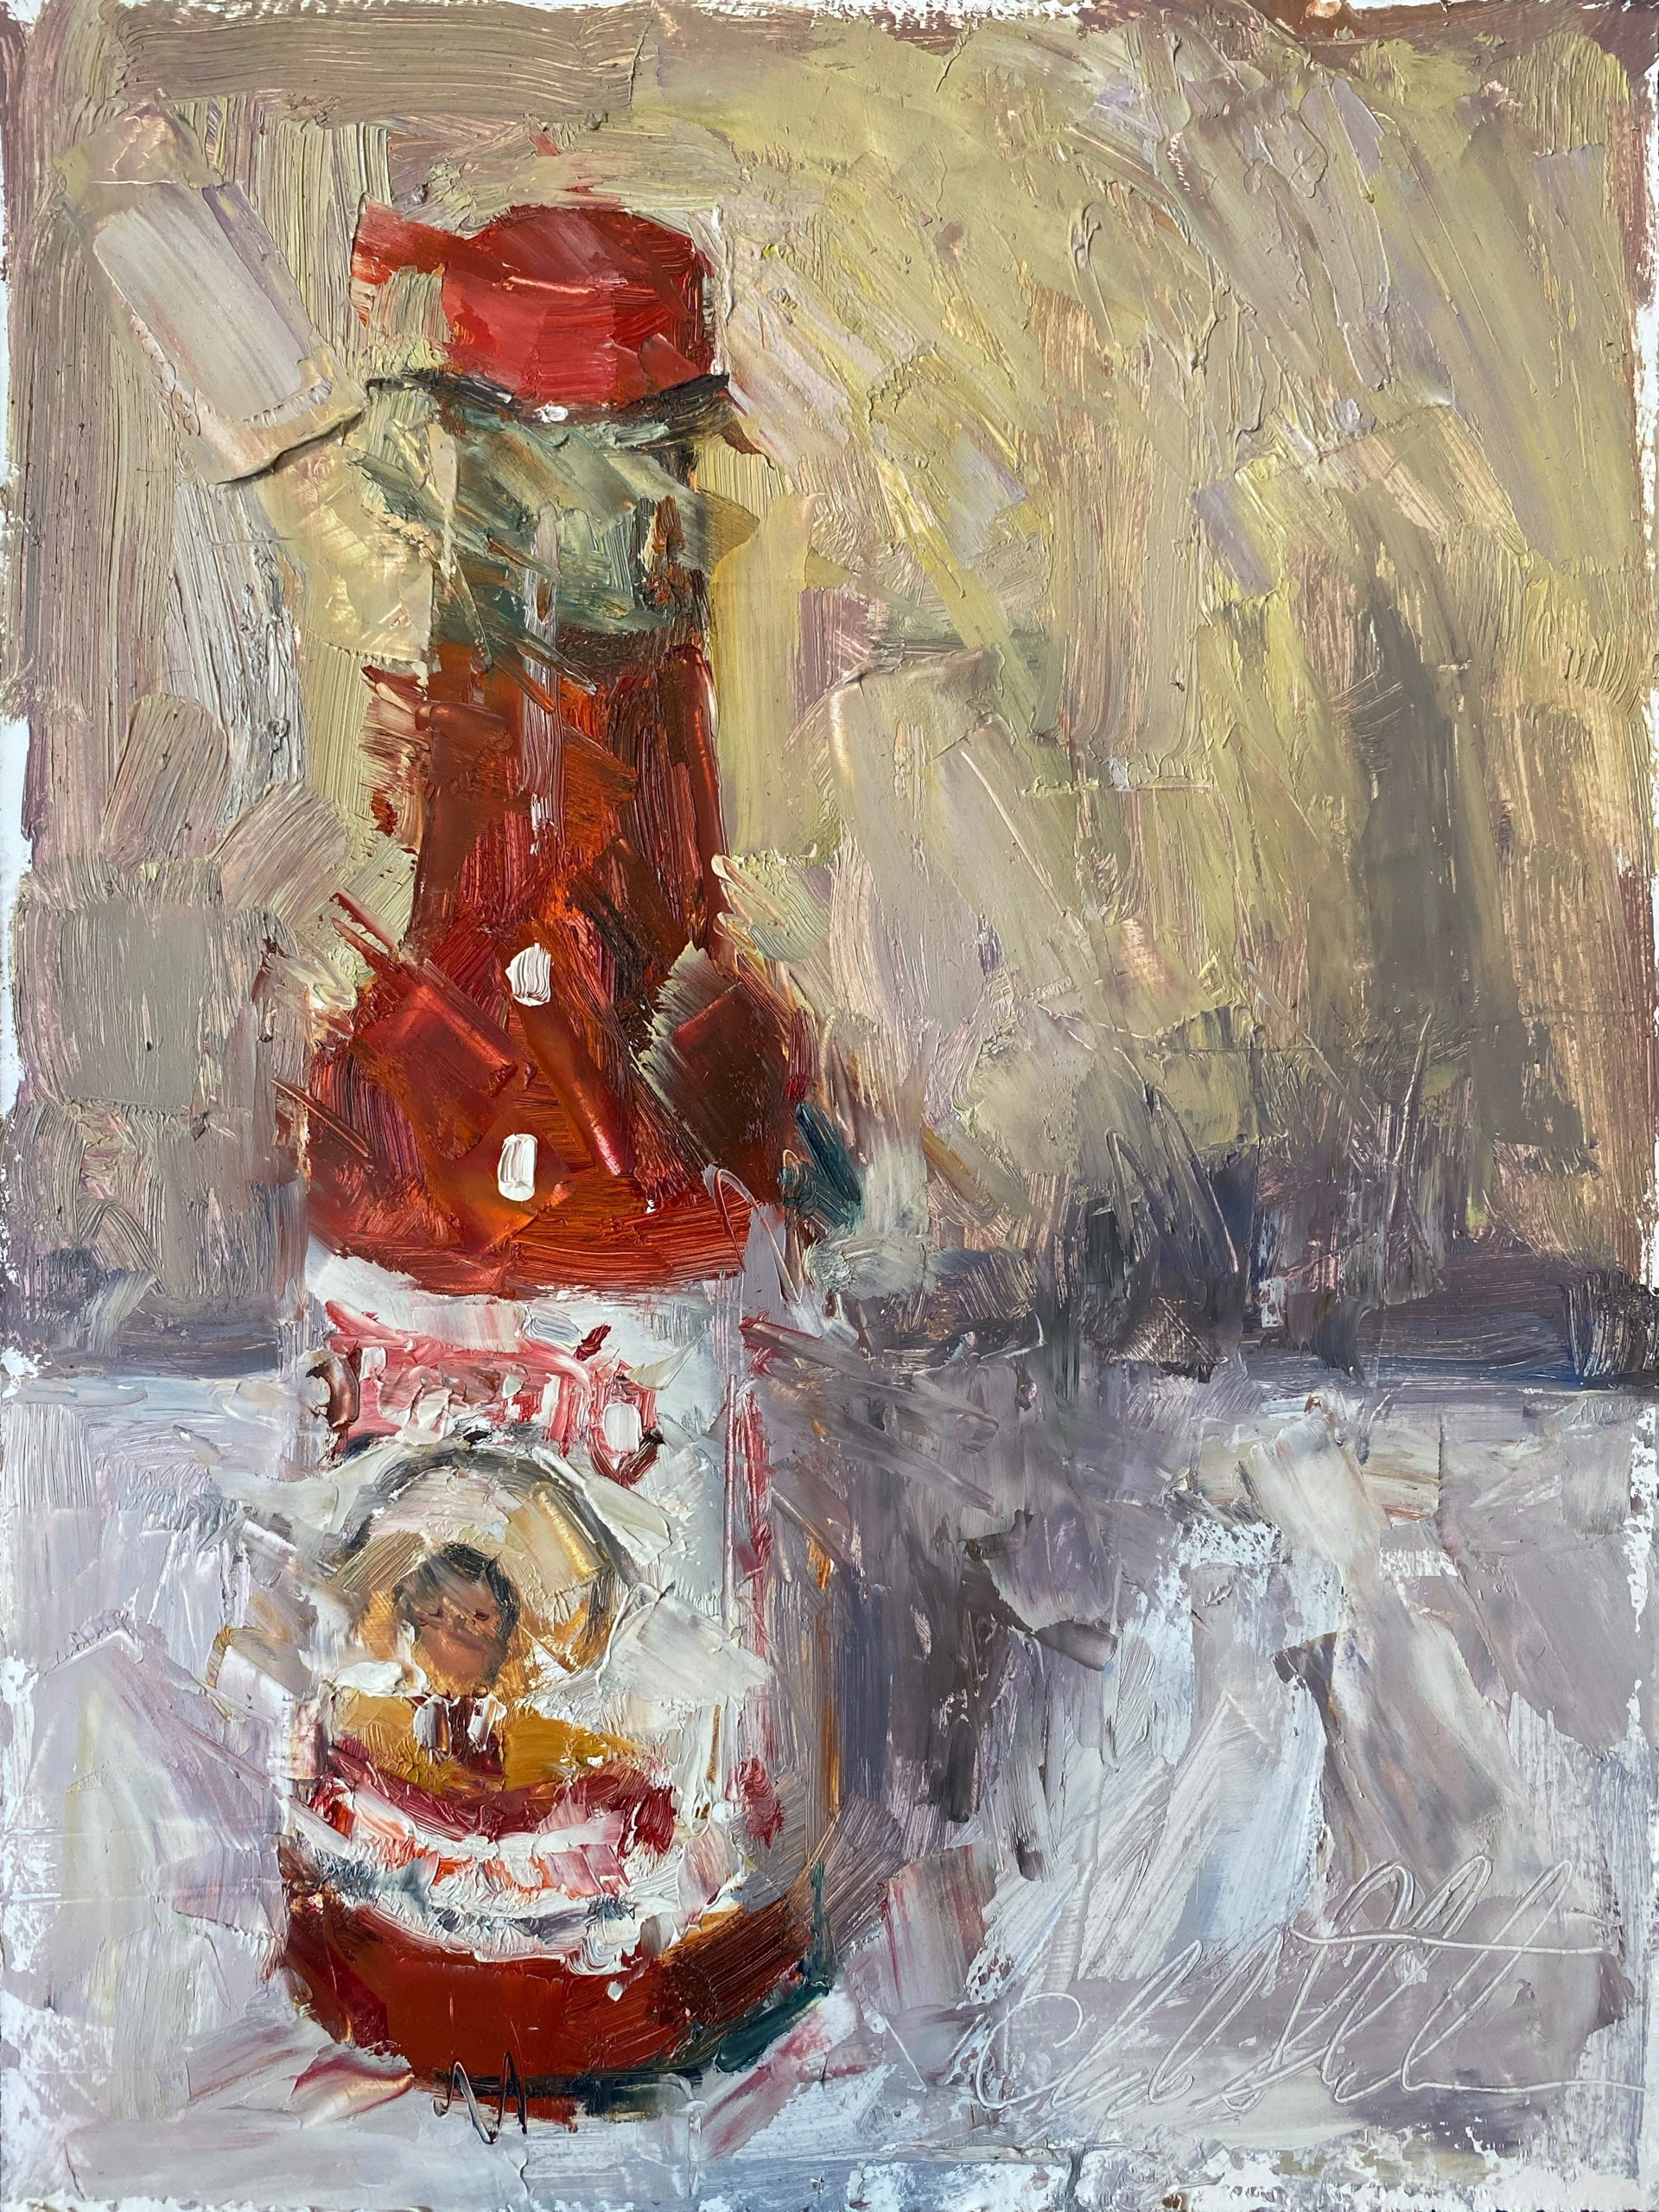 Tapatio by Clyde Steadman